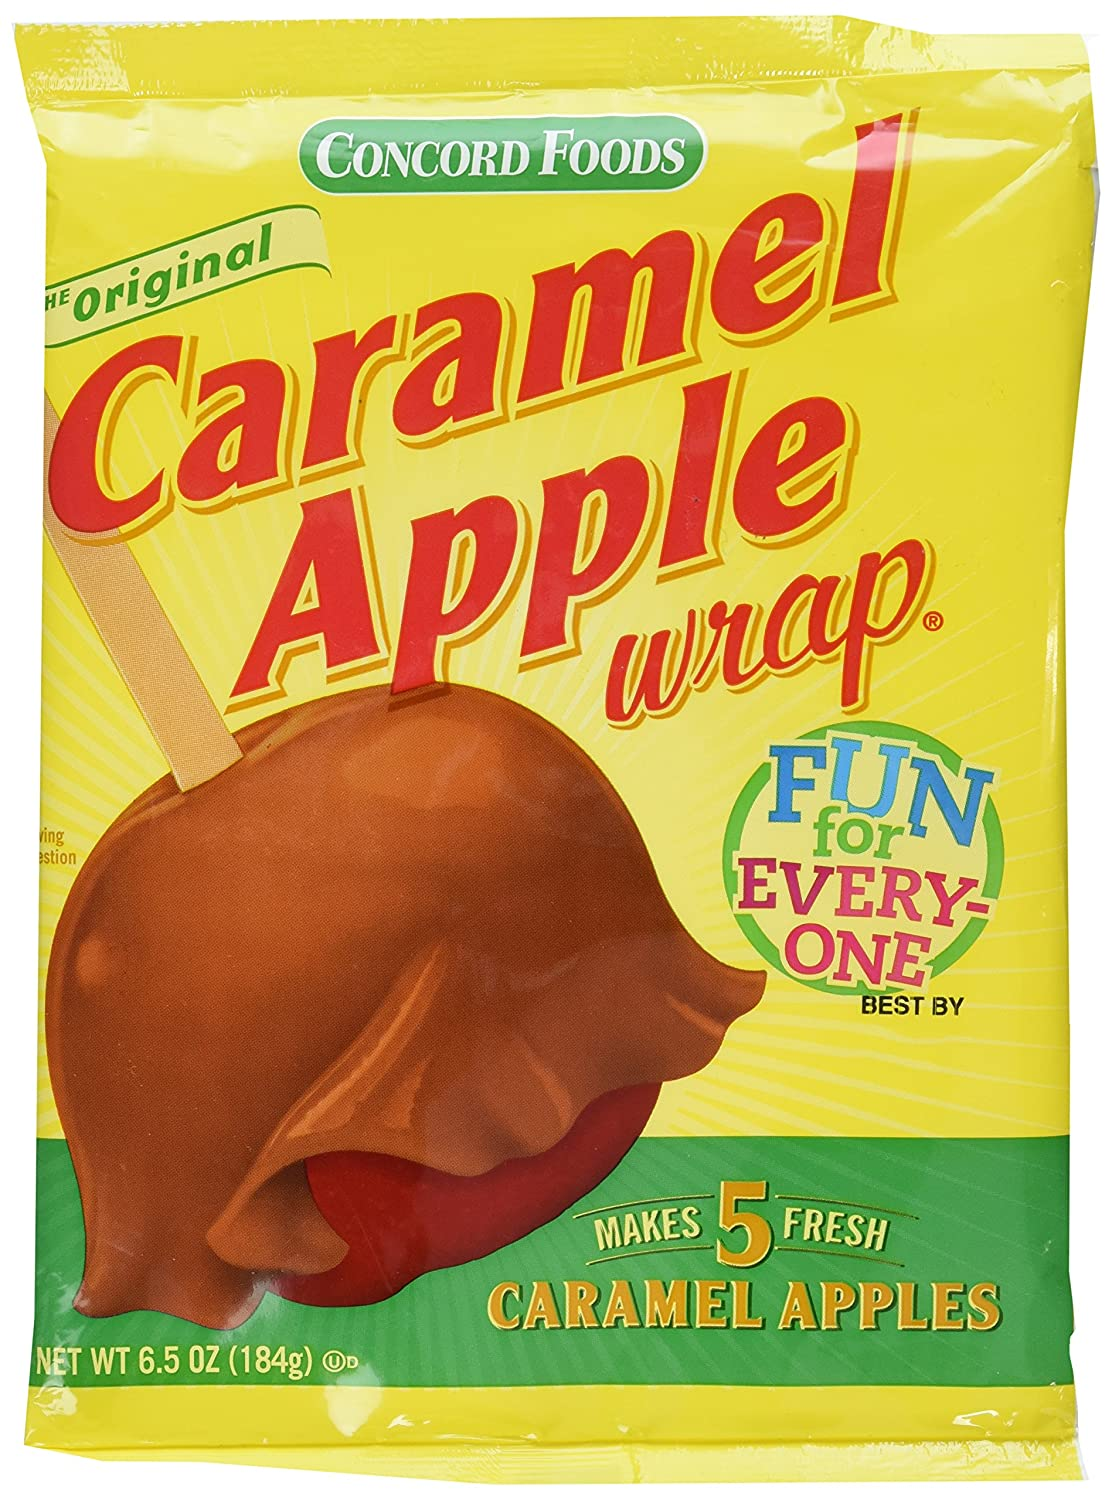 Amazon Com Concord Caramel Apple Wrap 6 05 Oz Package Value 3 Pack Makes 15 Fresh Caramel Apples Caramel Candy Grocery Gourmet Food